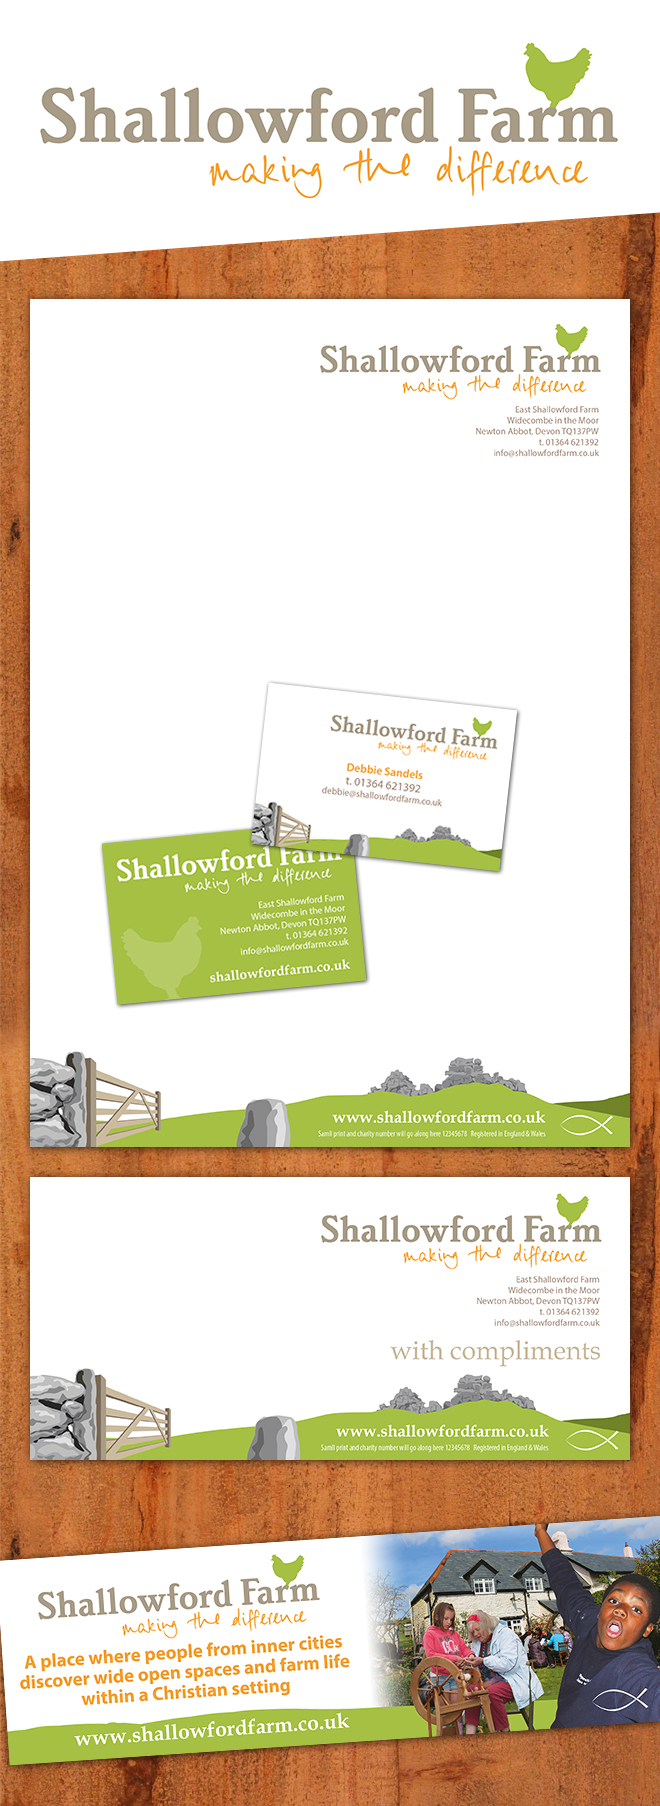 Shallowford Farm Branding Design